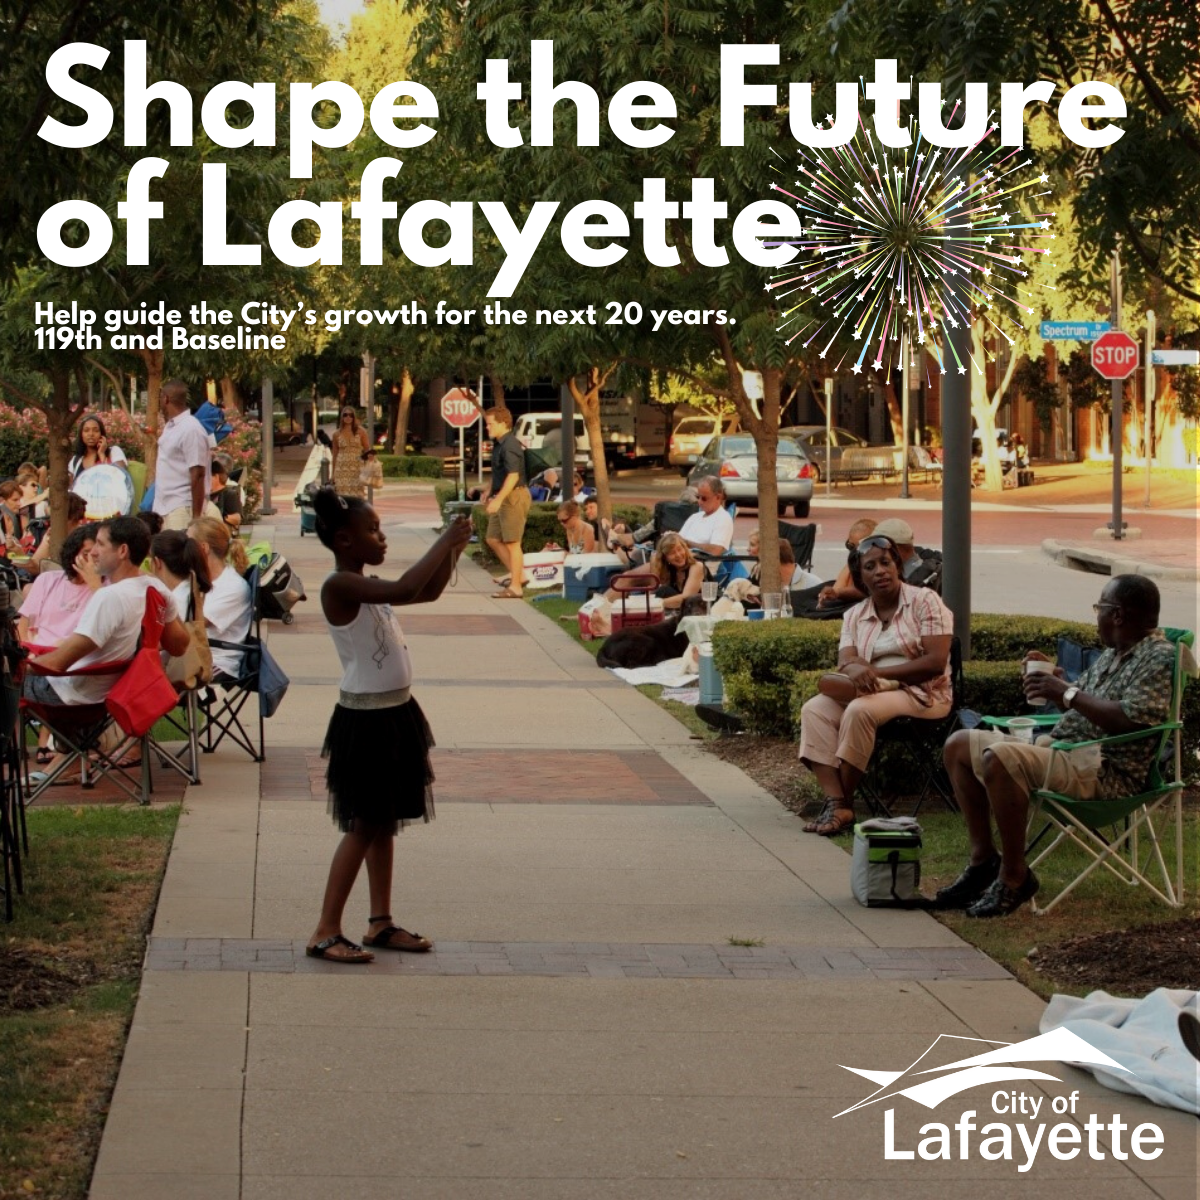 119th and Baseline eng.